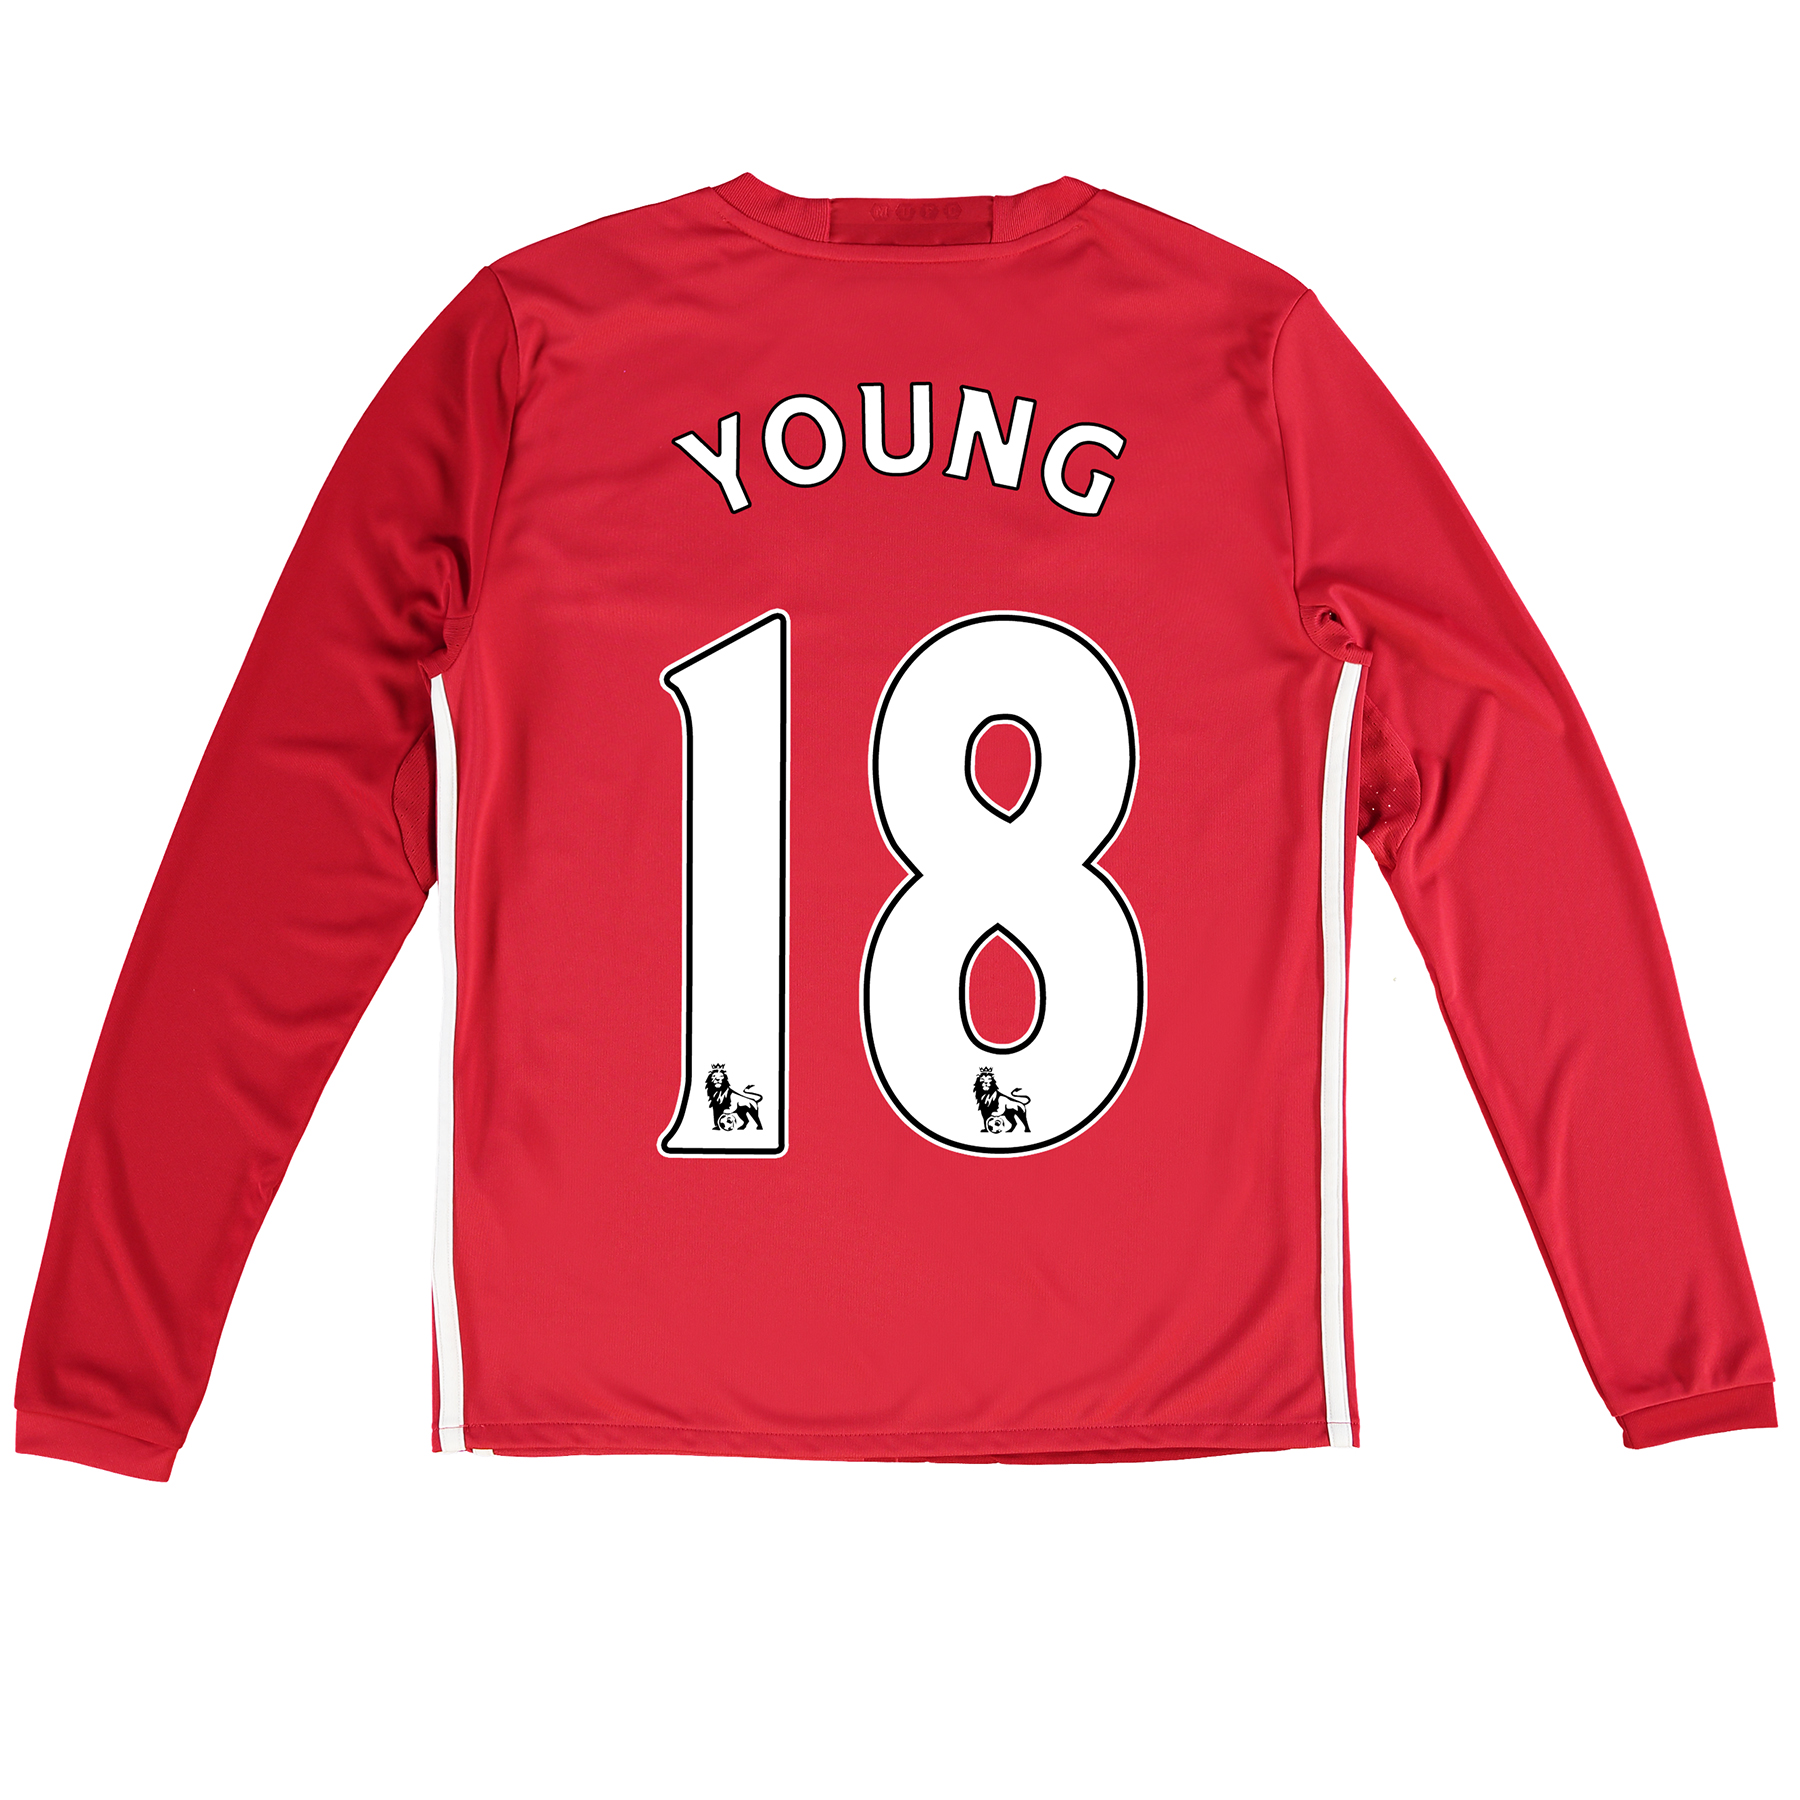 Manchester United Home Shirt 2016-17 - Kids - Long Sleeve with Young 1